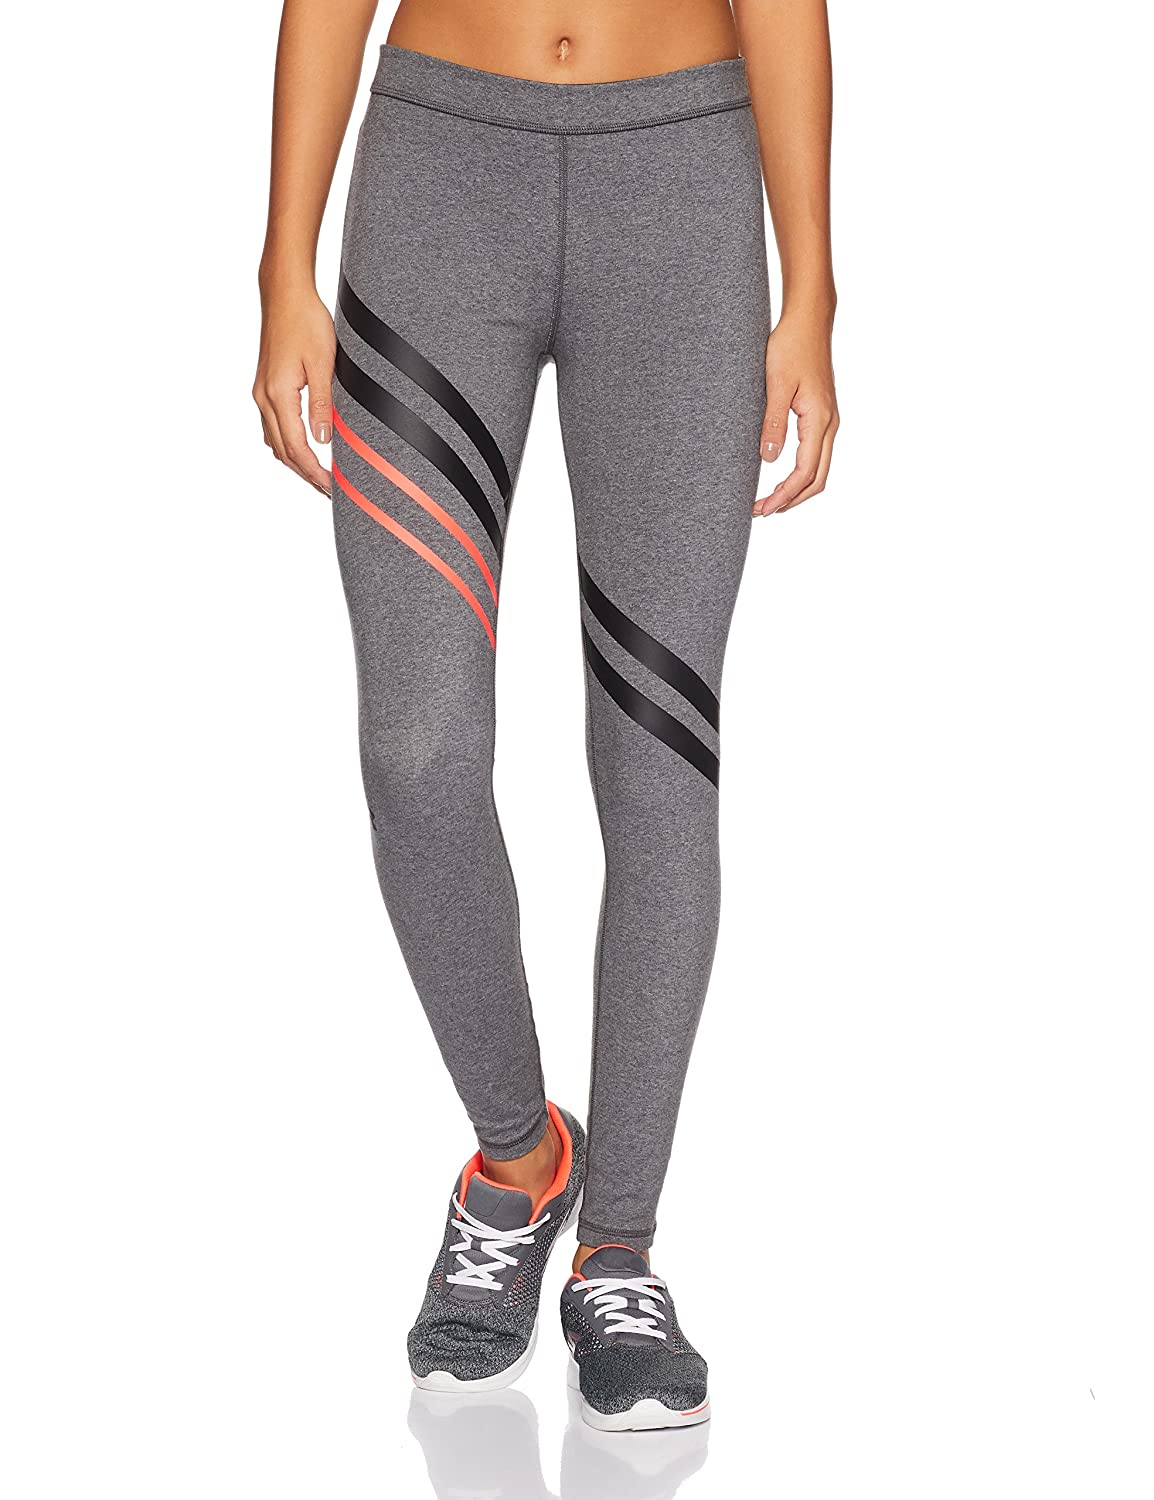 Under Armour Women's Favorite Engineered Leggings Under Armour Apparel 1303334